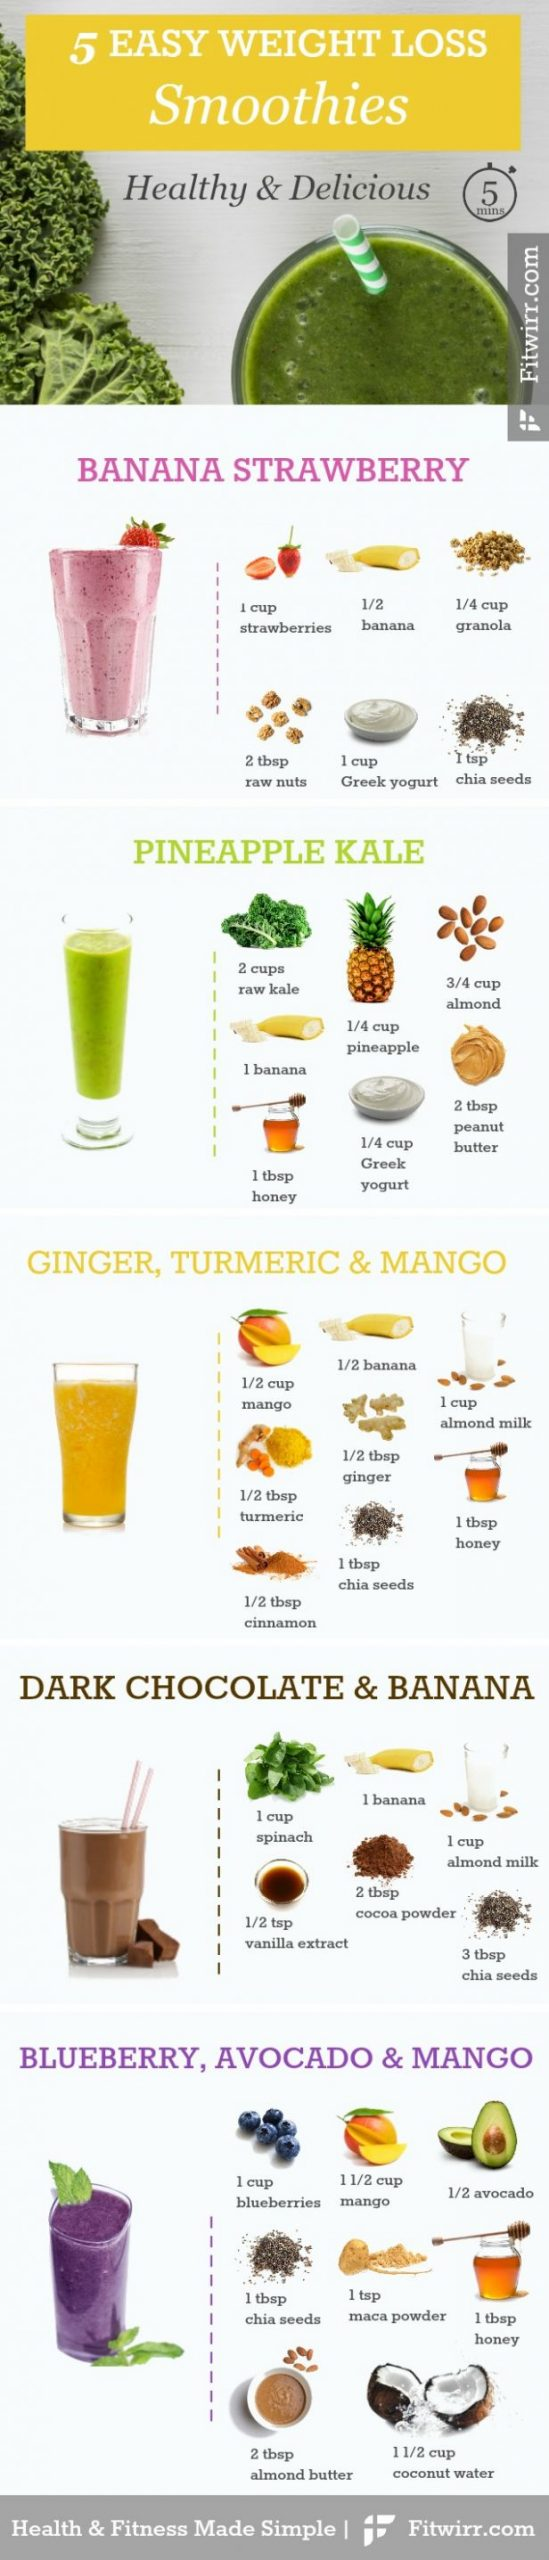 10 Best Smoothie Recipes for Weight Loss - Fitwirr - Recipes For Weight Loss Simple